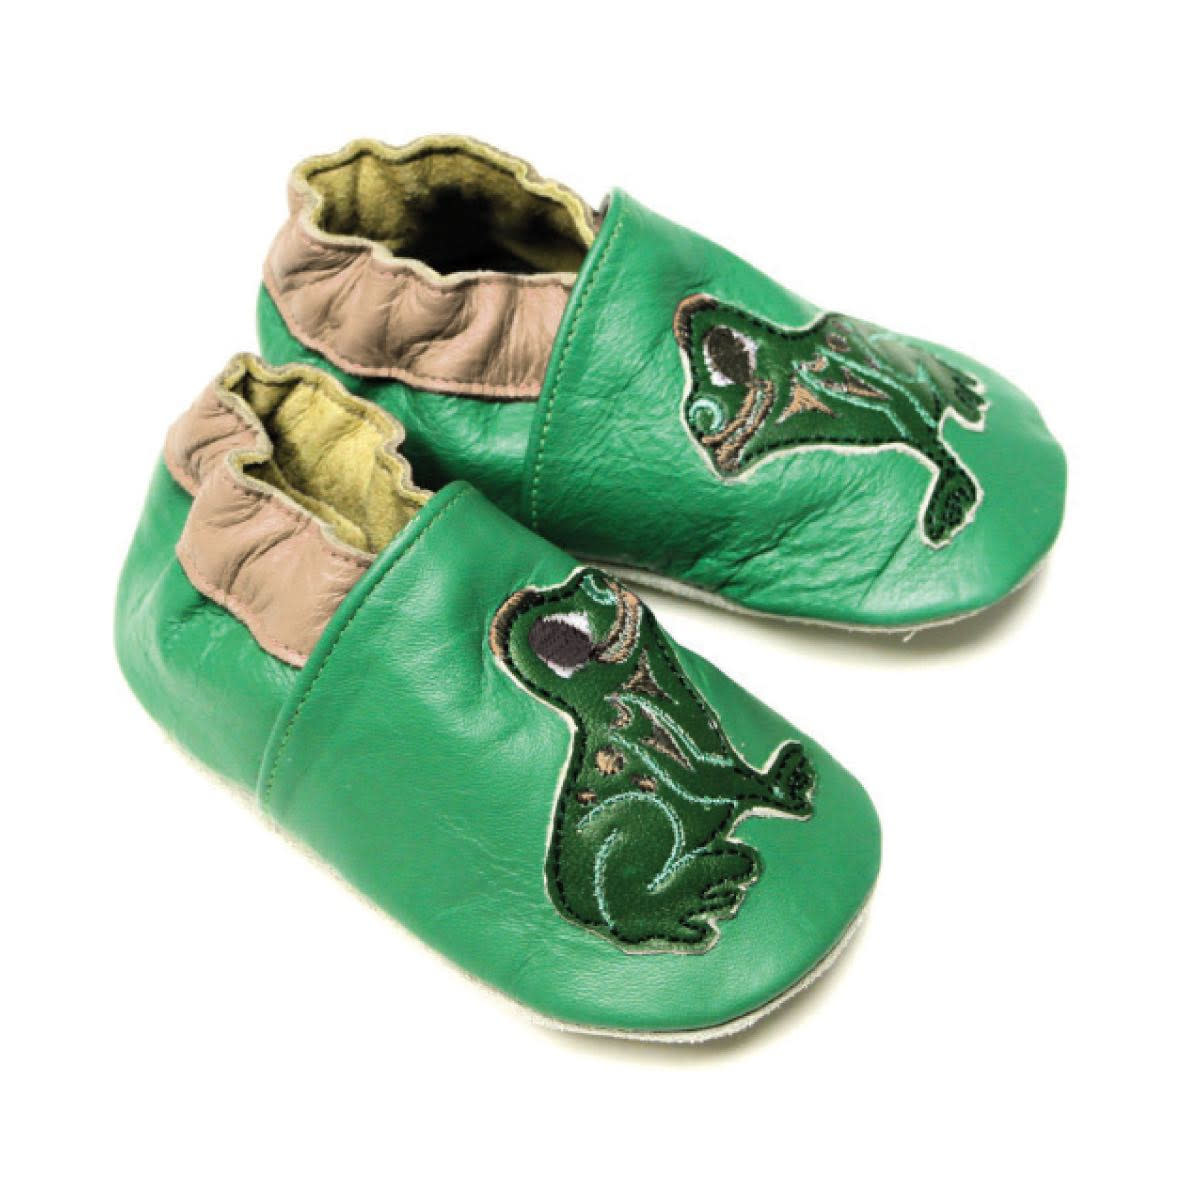 Baby Shoes - Wakus by Doug Lafortune-1